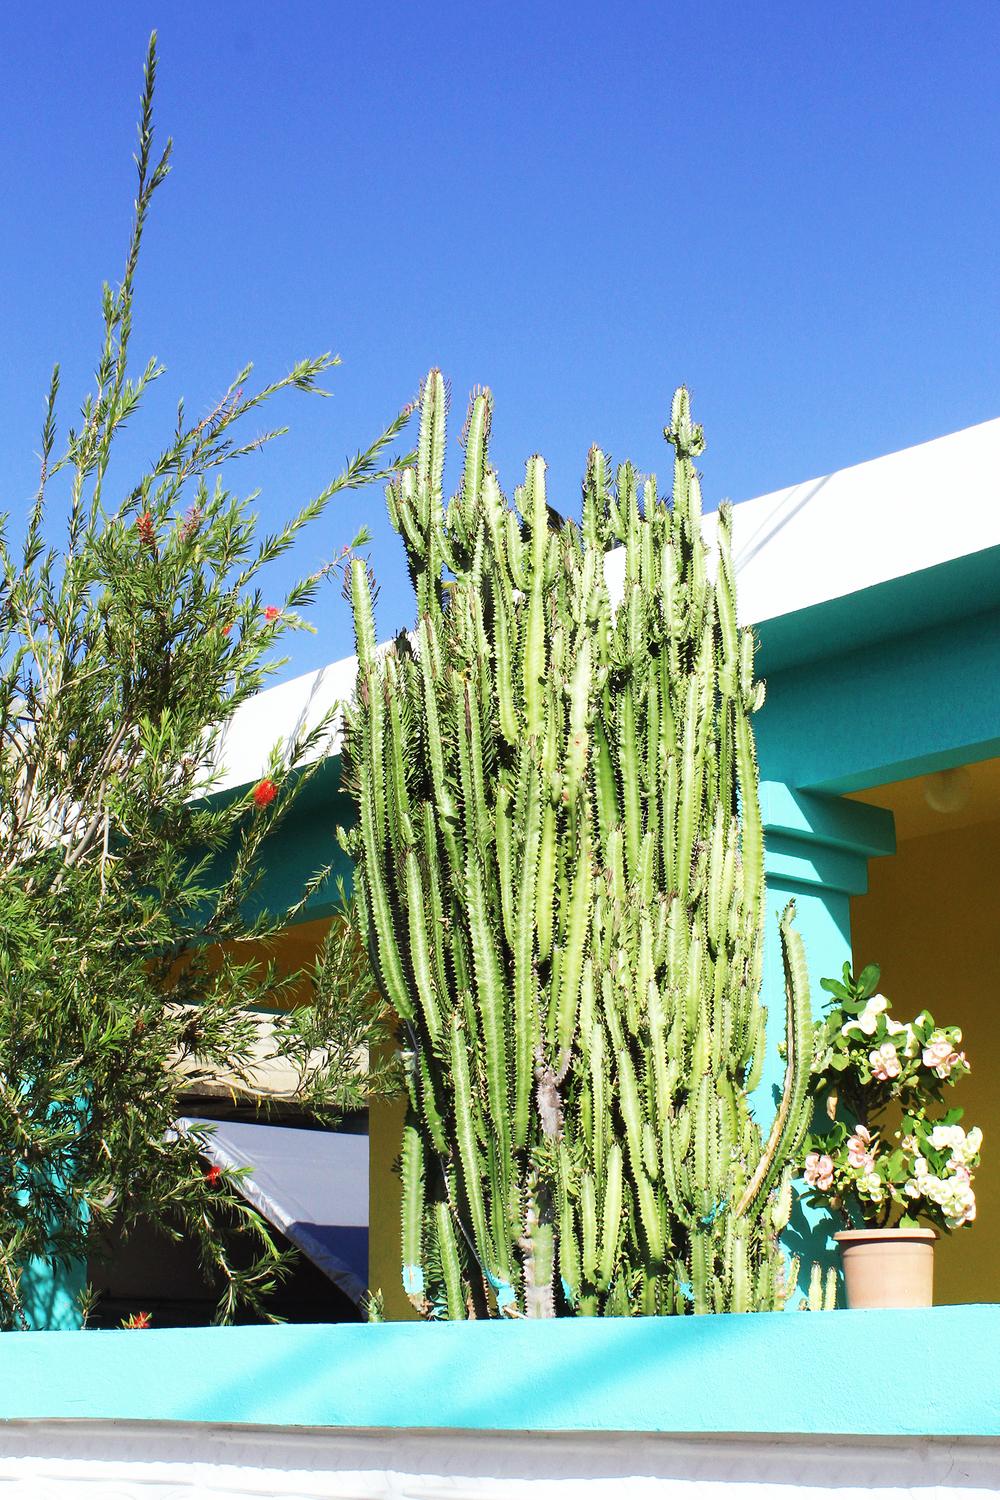 Cactuses in the Garden